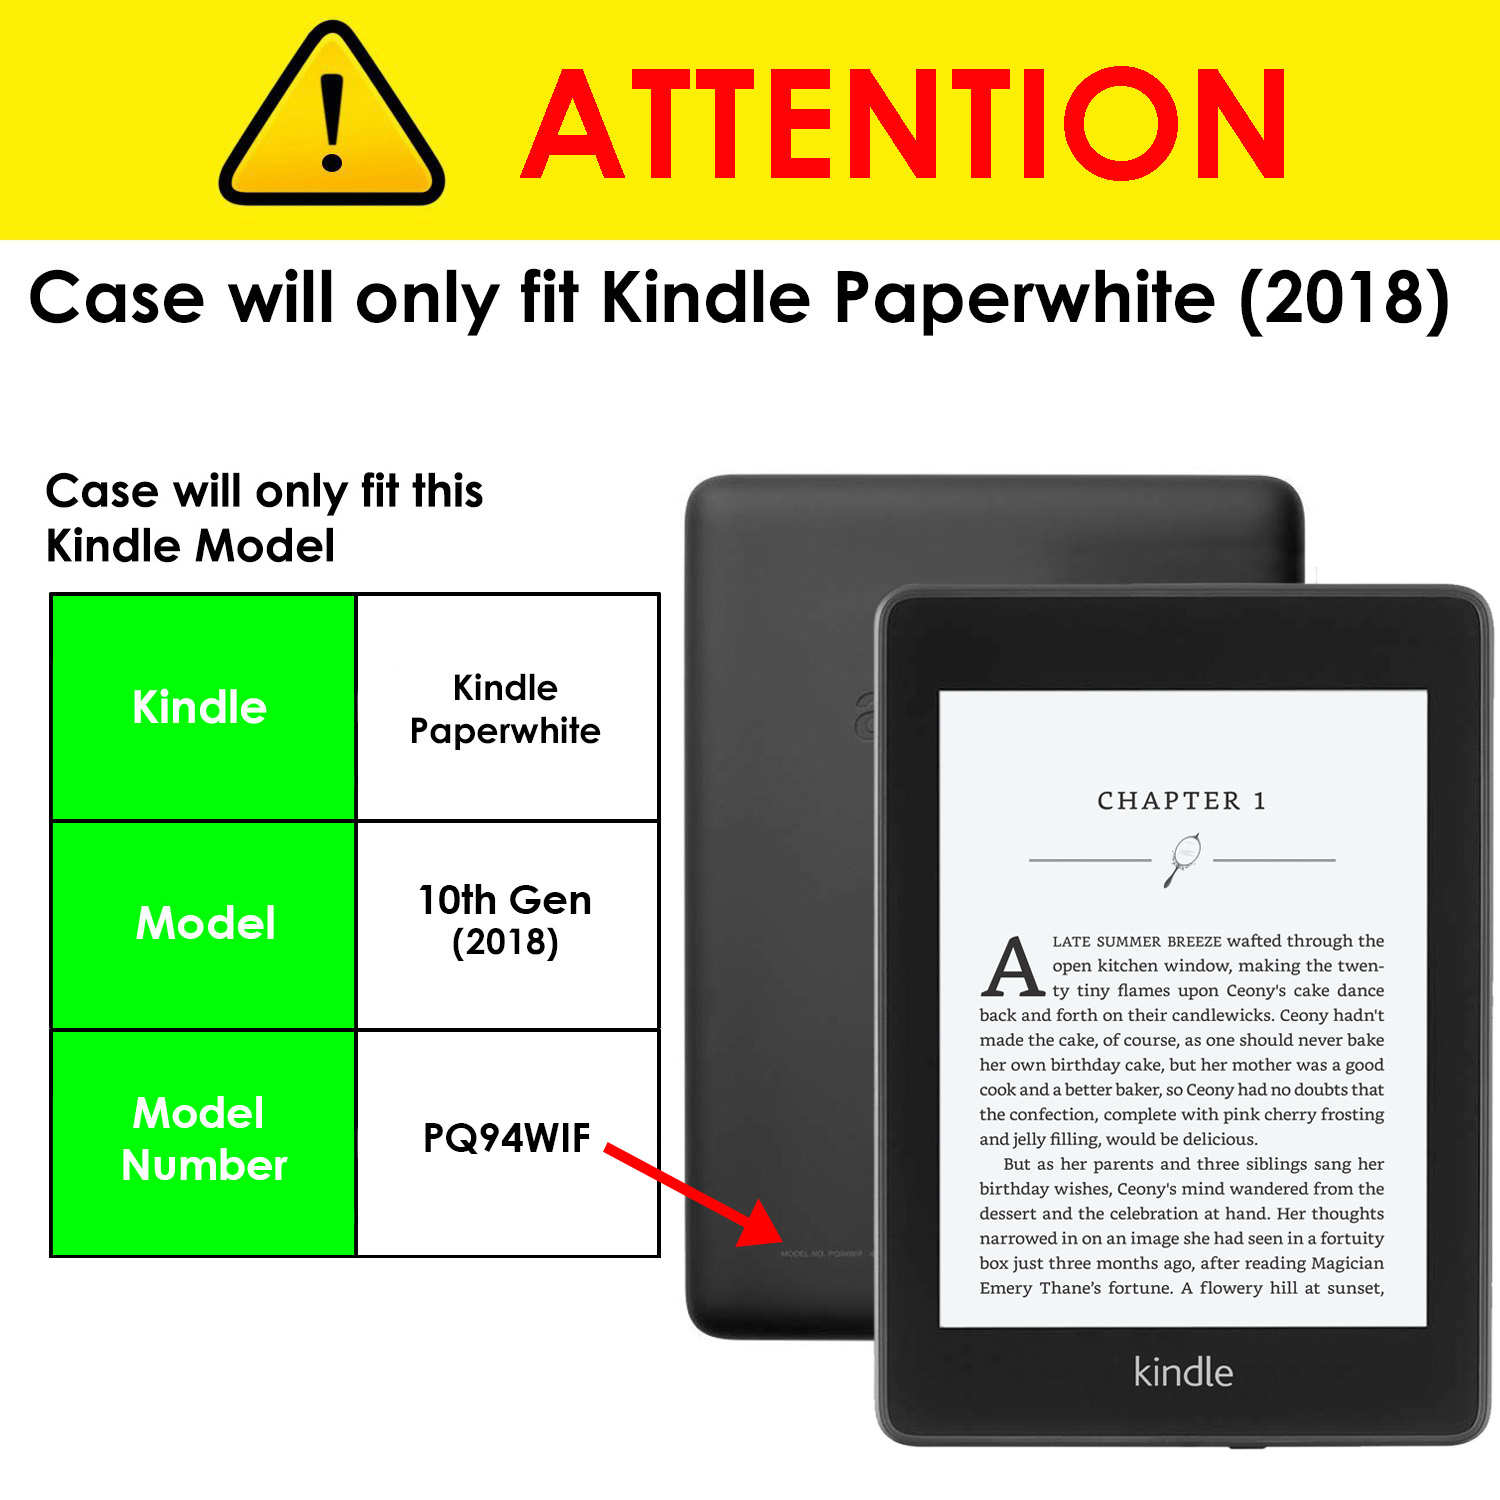 Kindle-Paperwhite-2018-Case-Smart-Protective-Cover-Case-Slim-Lightweight-Shell